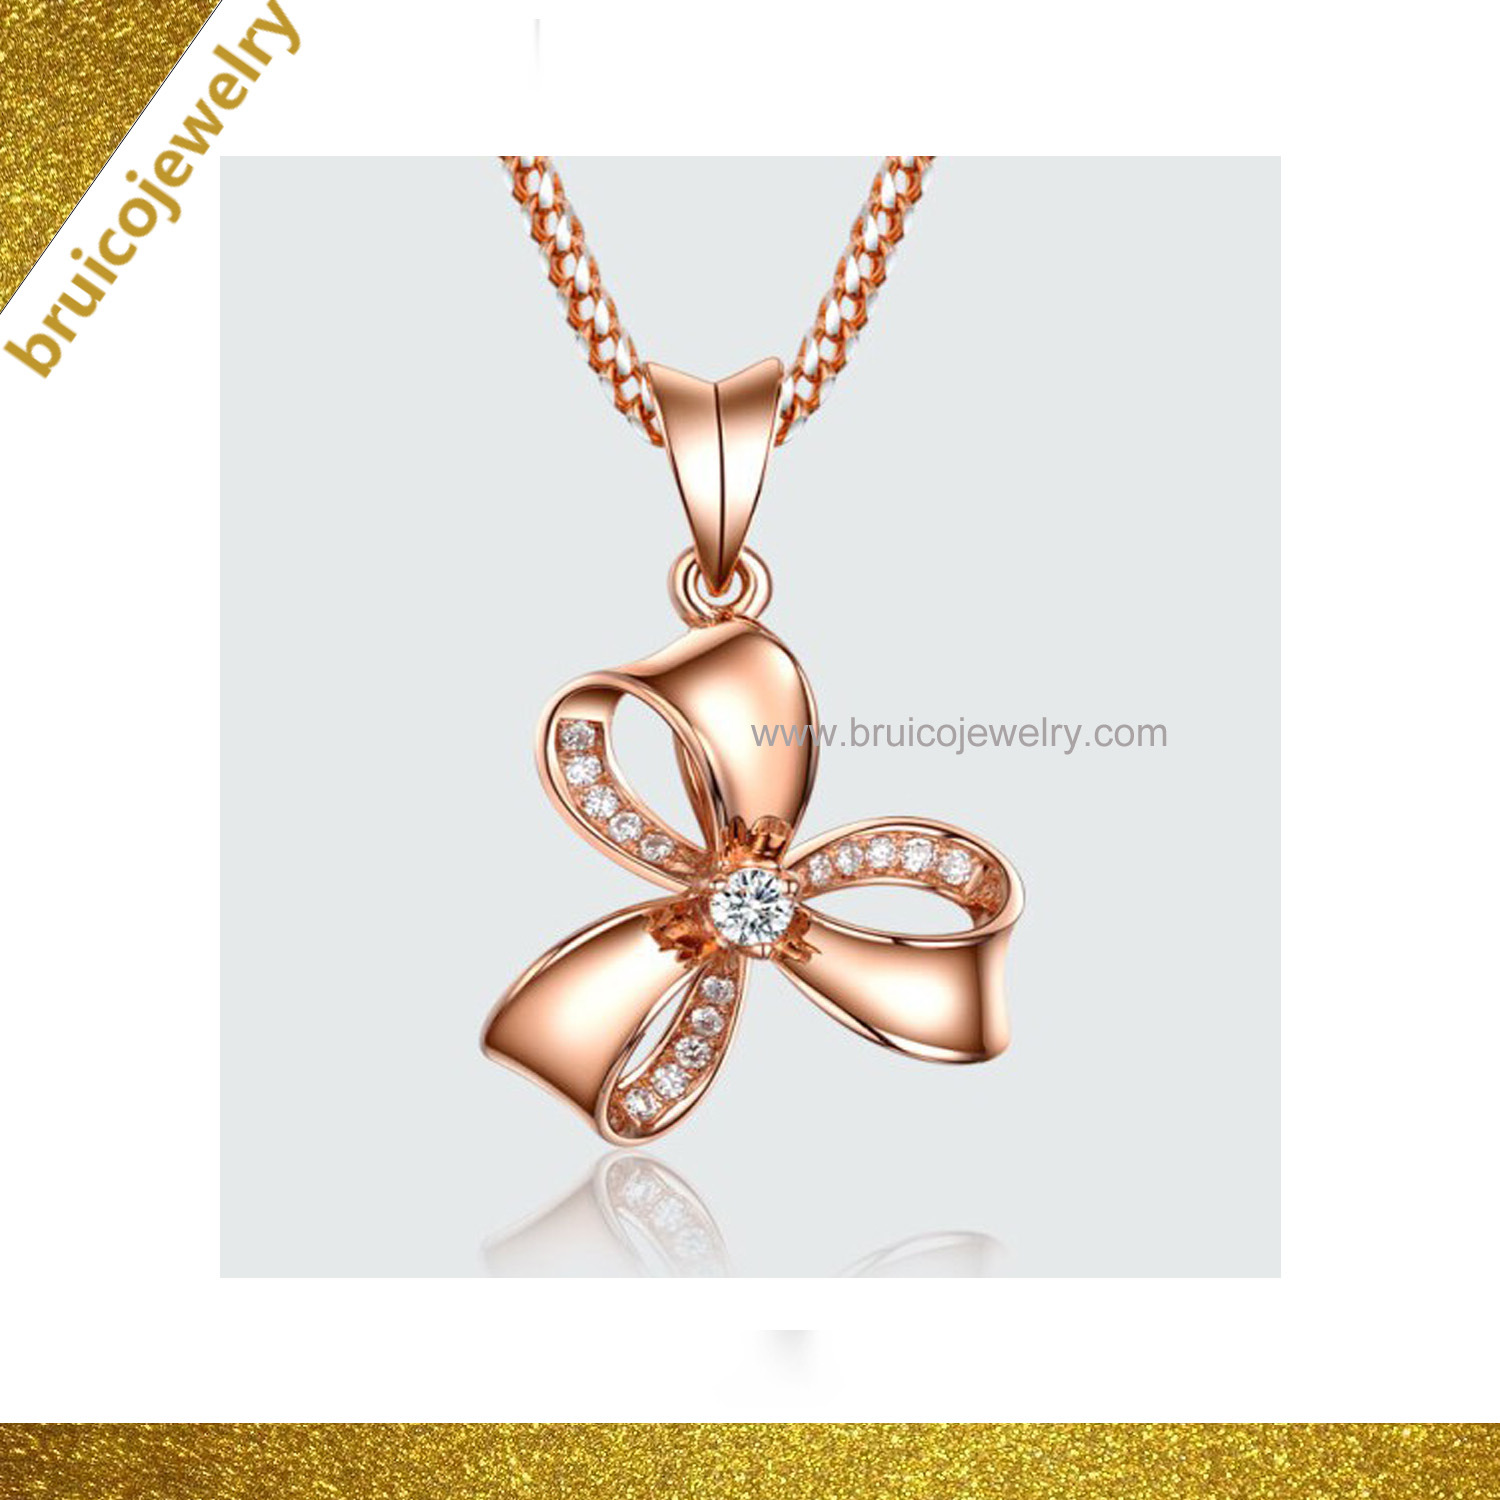 China Trendy Jewelry Inlaid Diamond Necklace Silver Designs Modern Gold Ring Necklace For Girls China Fashion Jewelry And Pendant Jewelry Price